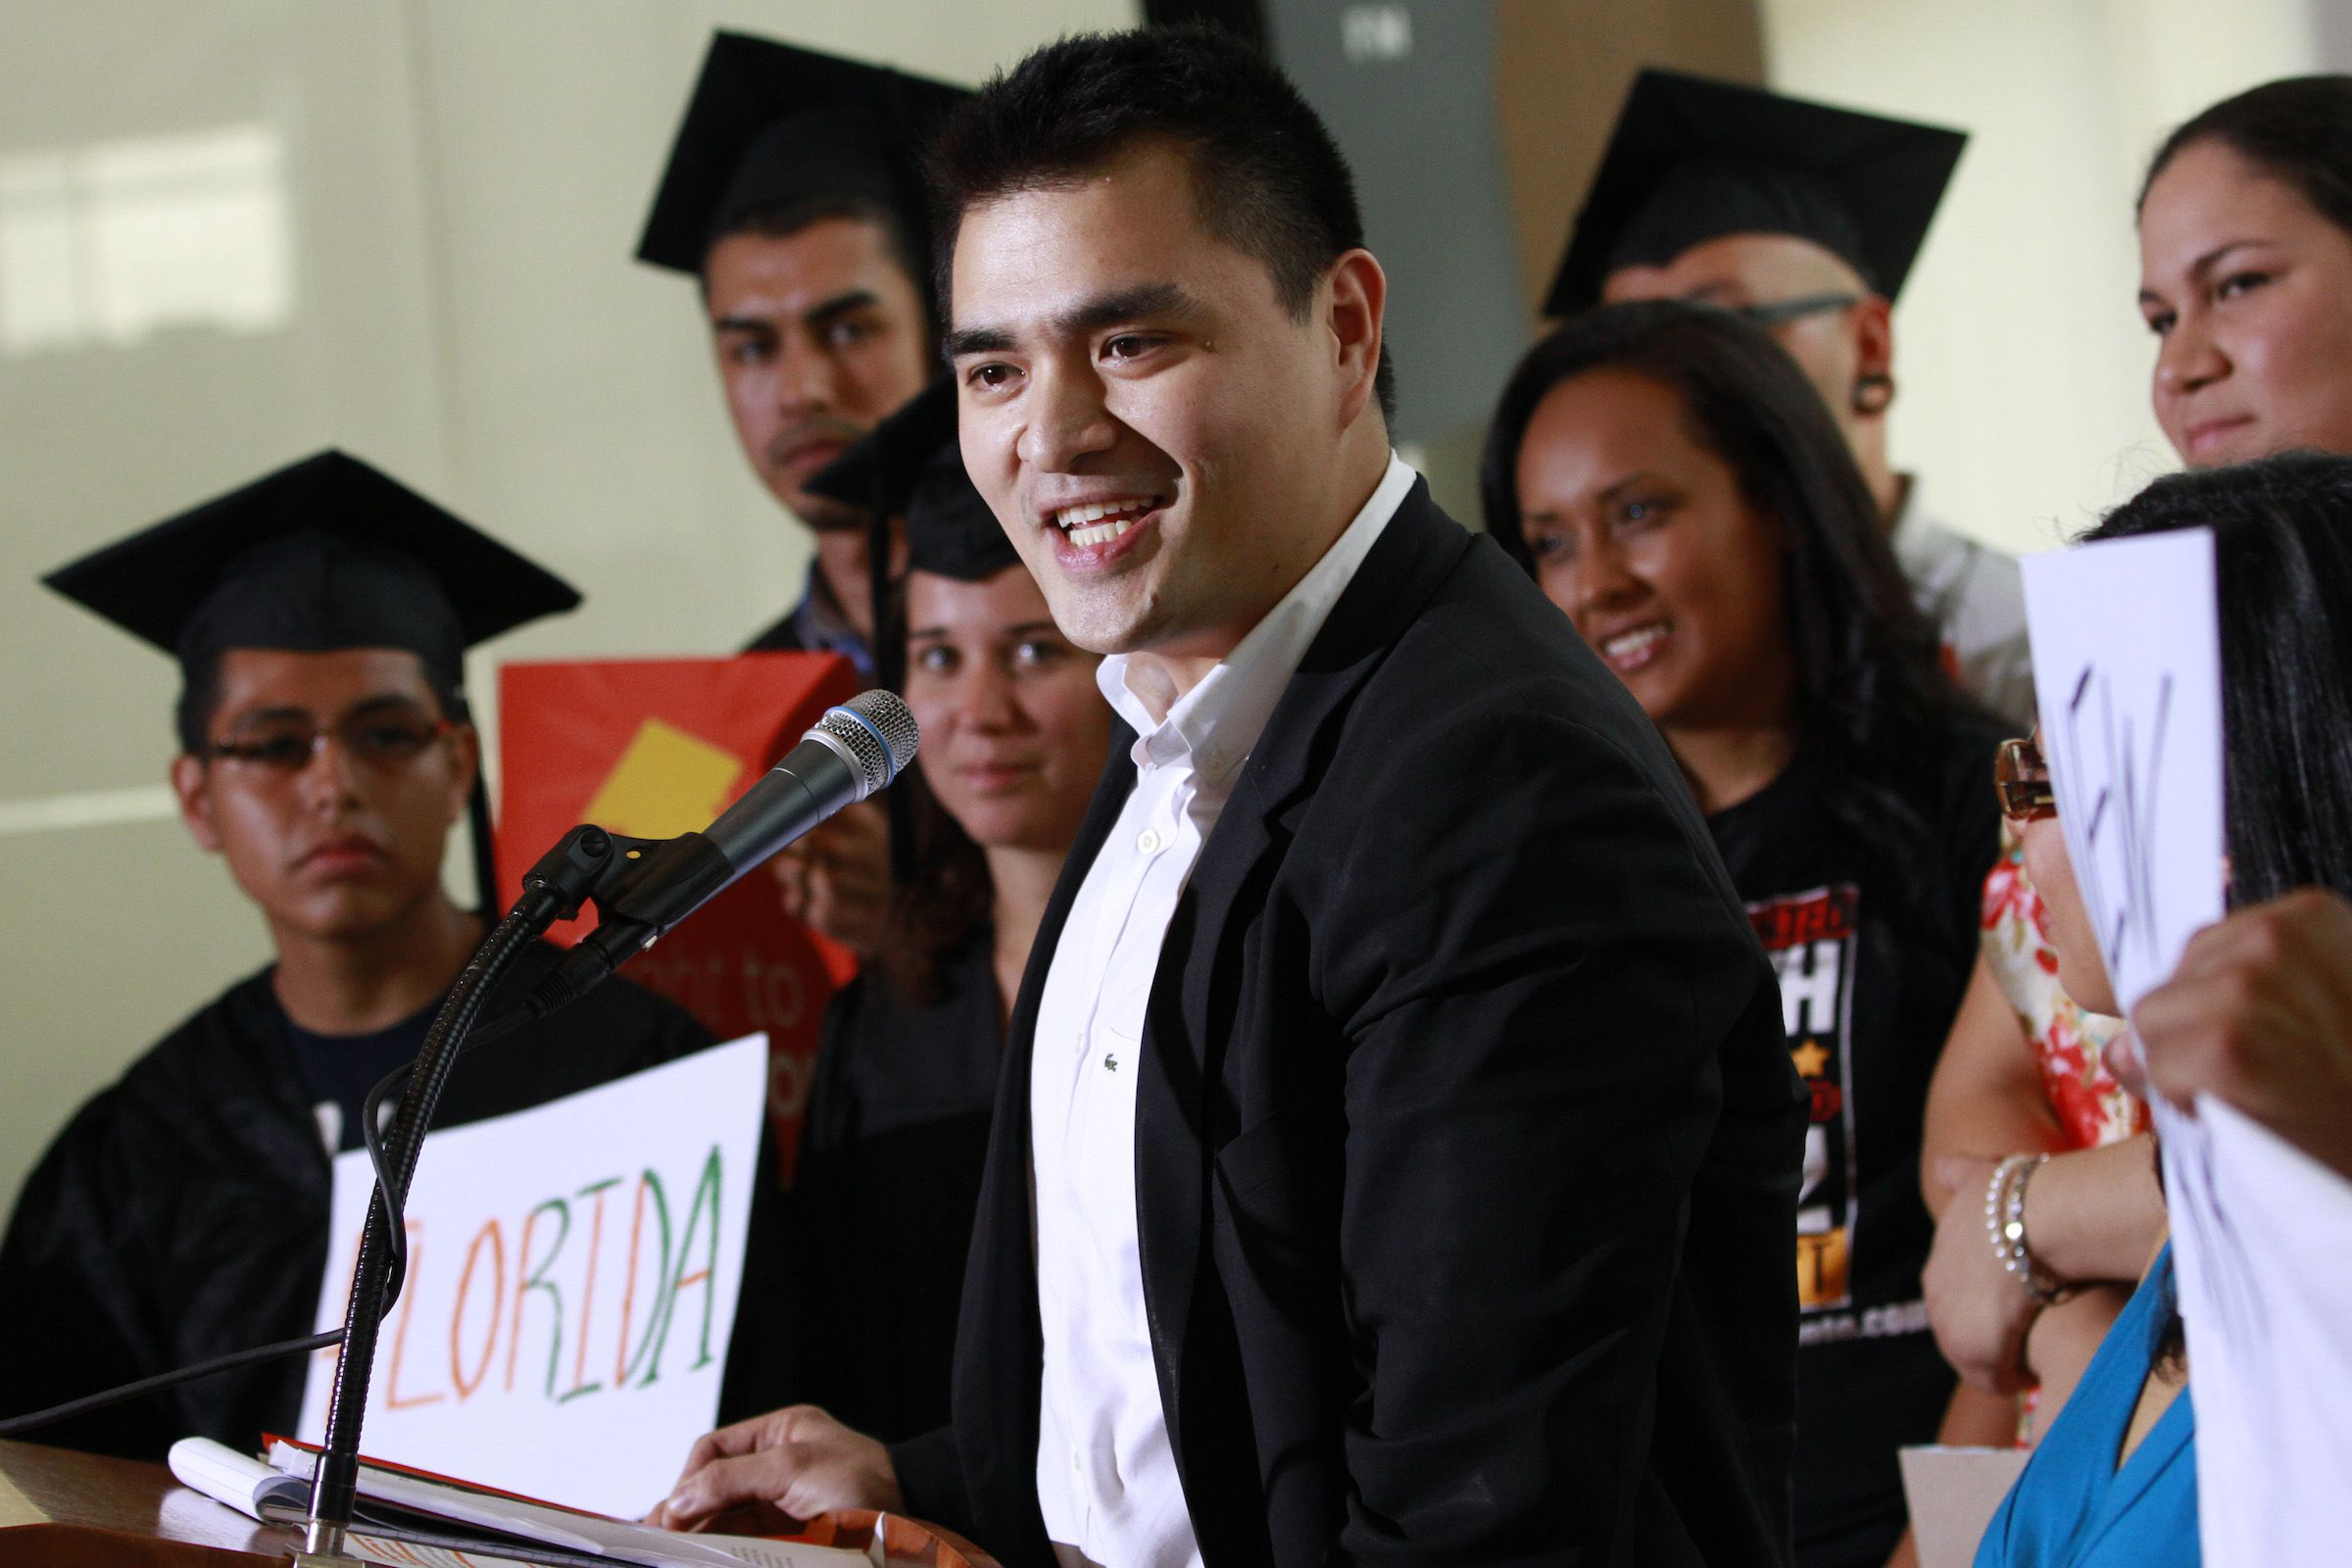 Jose Antonio Vargas, immigration reformer